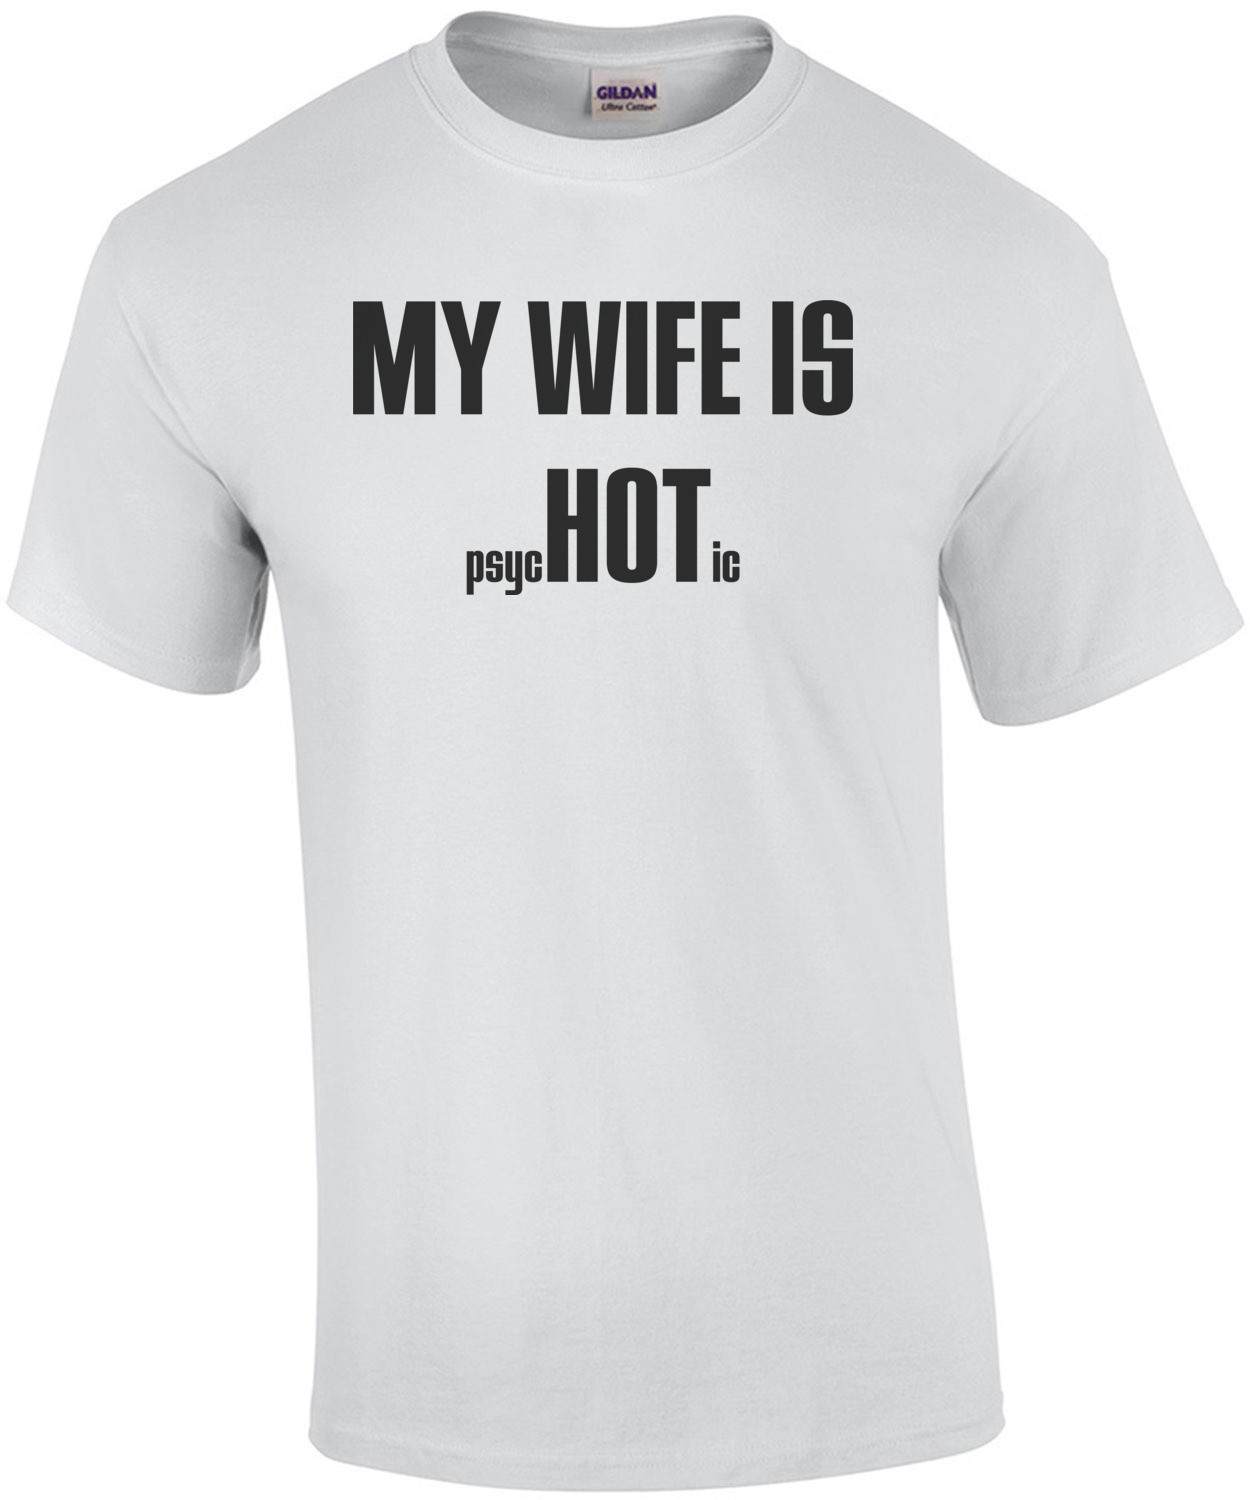 My Wife is Hot (Psychotic) T-Shirt